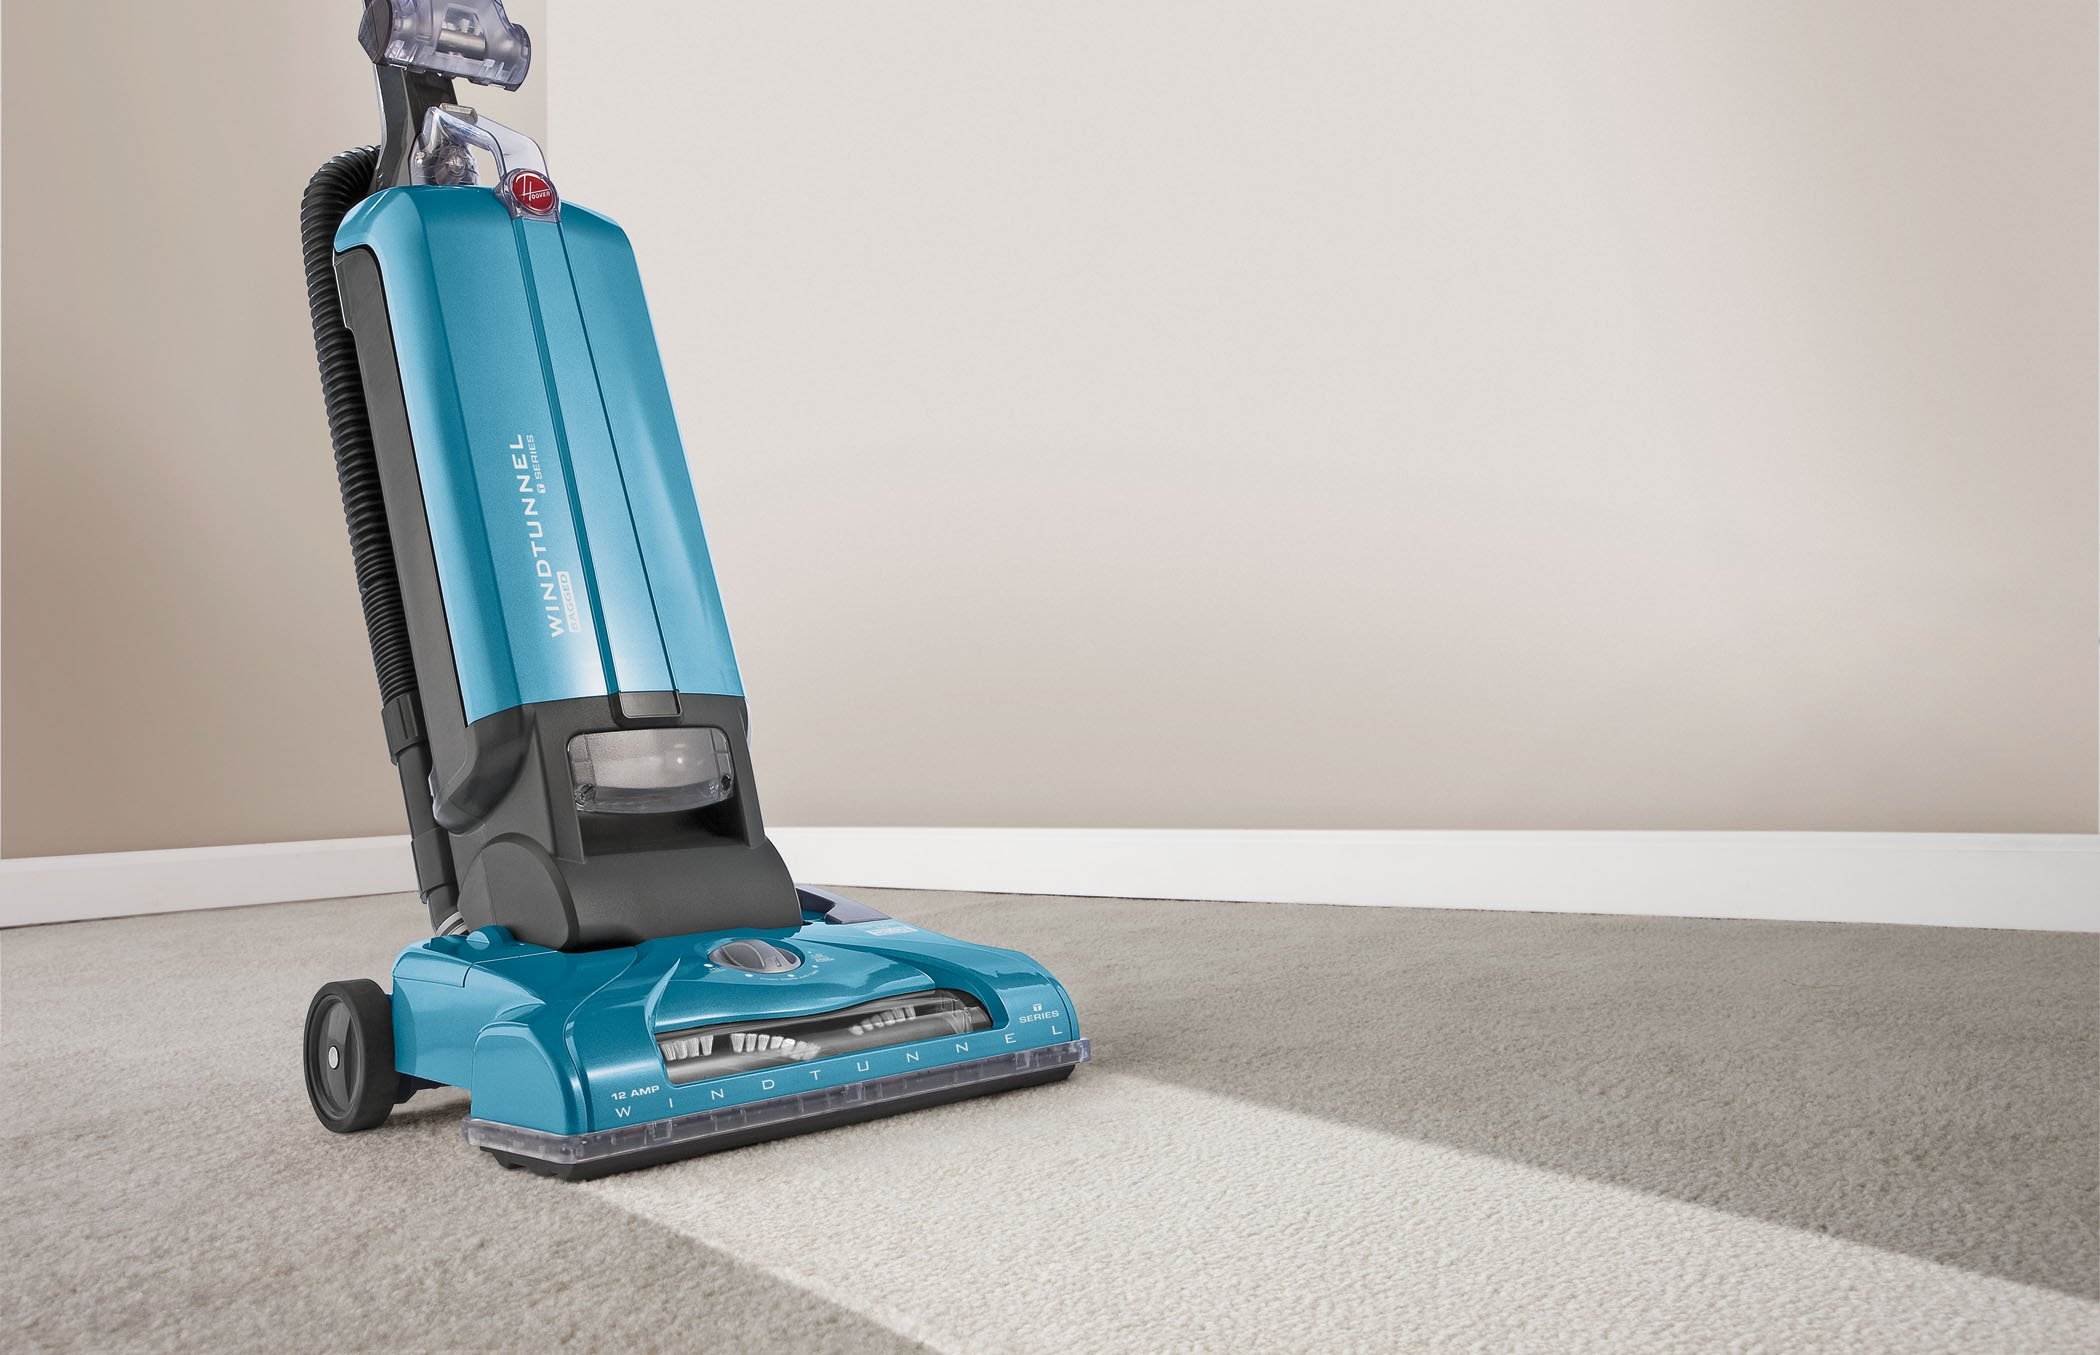 Hoover Vacuum Cleaner T-Series WindTunnel Corded Bagged Upright Vacuum UH30300 by Hoover (Image #4)